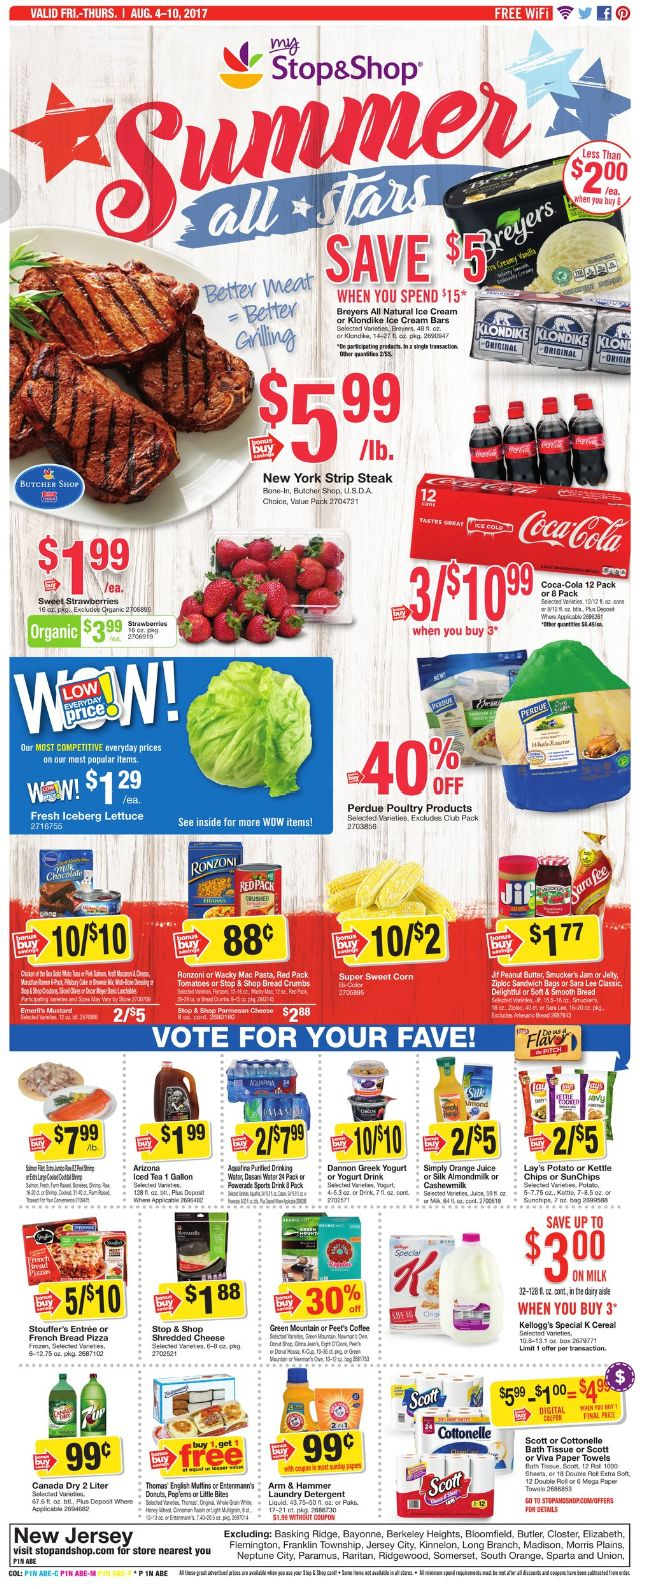 Stop and Shop Circular August 4 - 10, 2017 - http://www.olcatalog.com/grocery/stop-and-shop-circular.html